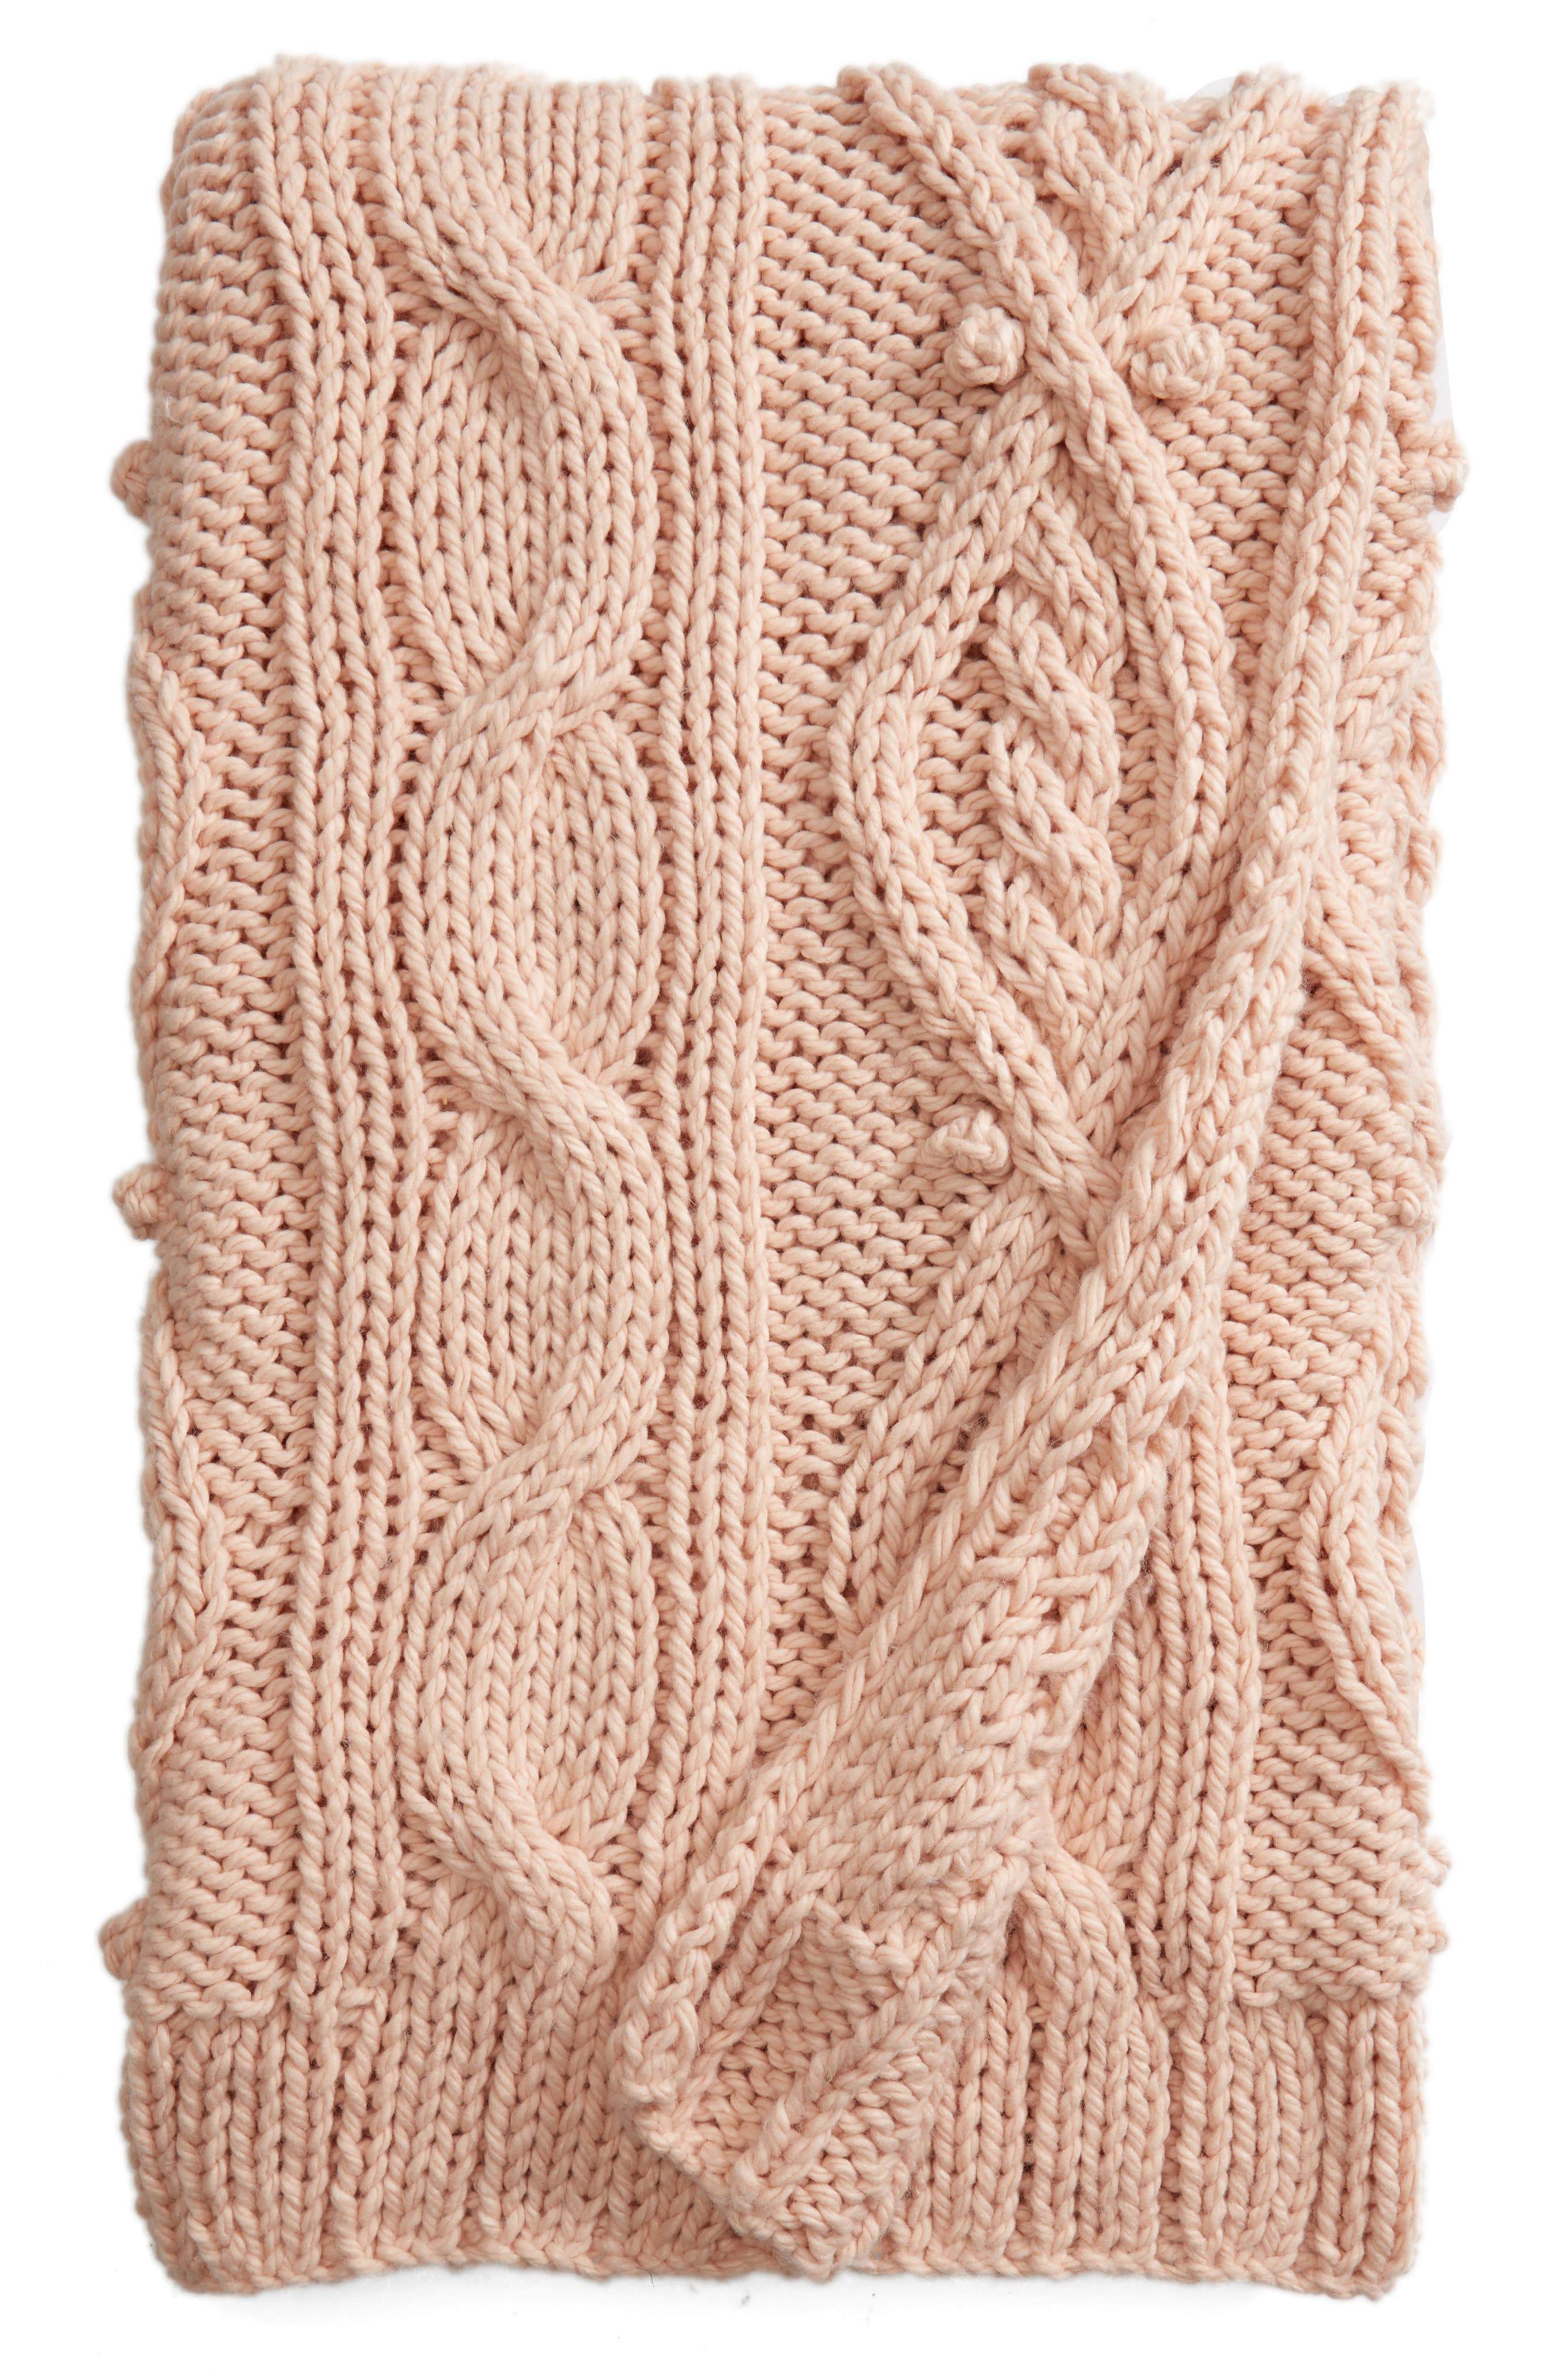 Chunky Cable Knit Throw Blanket,                             Main thumbnail 1, color,                             PINK HERO